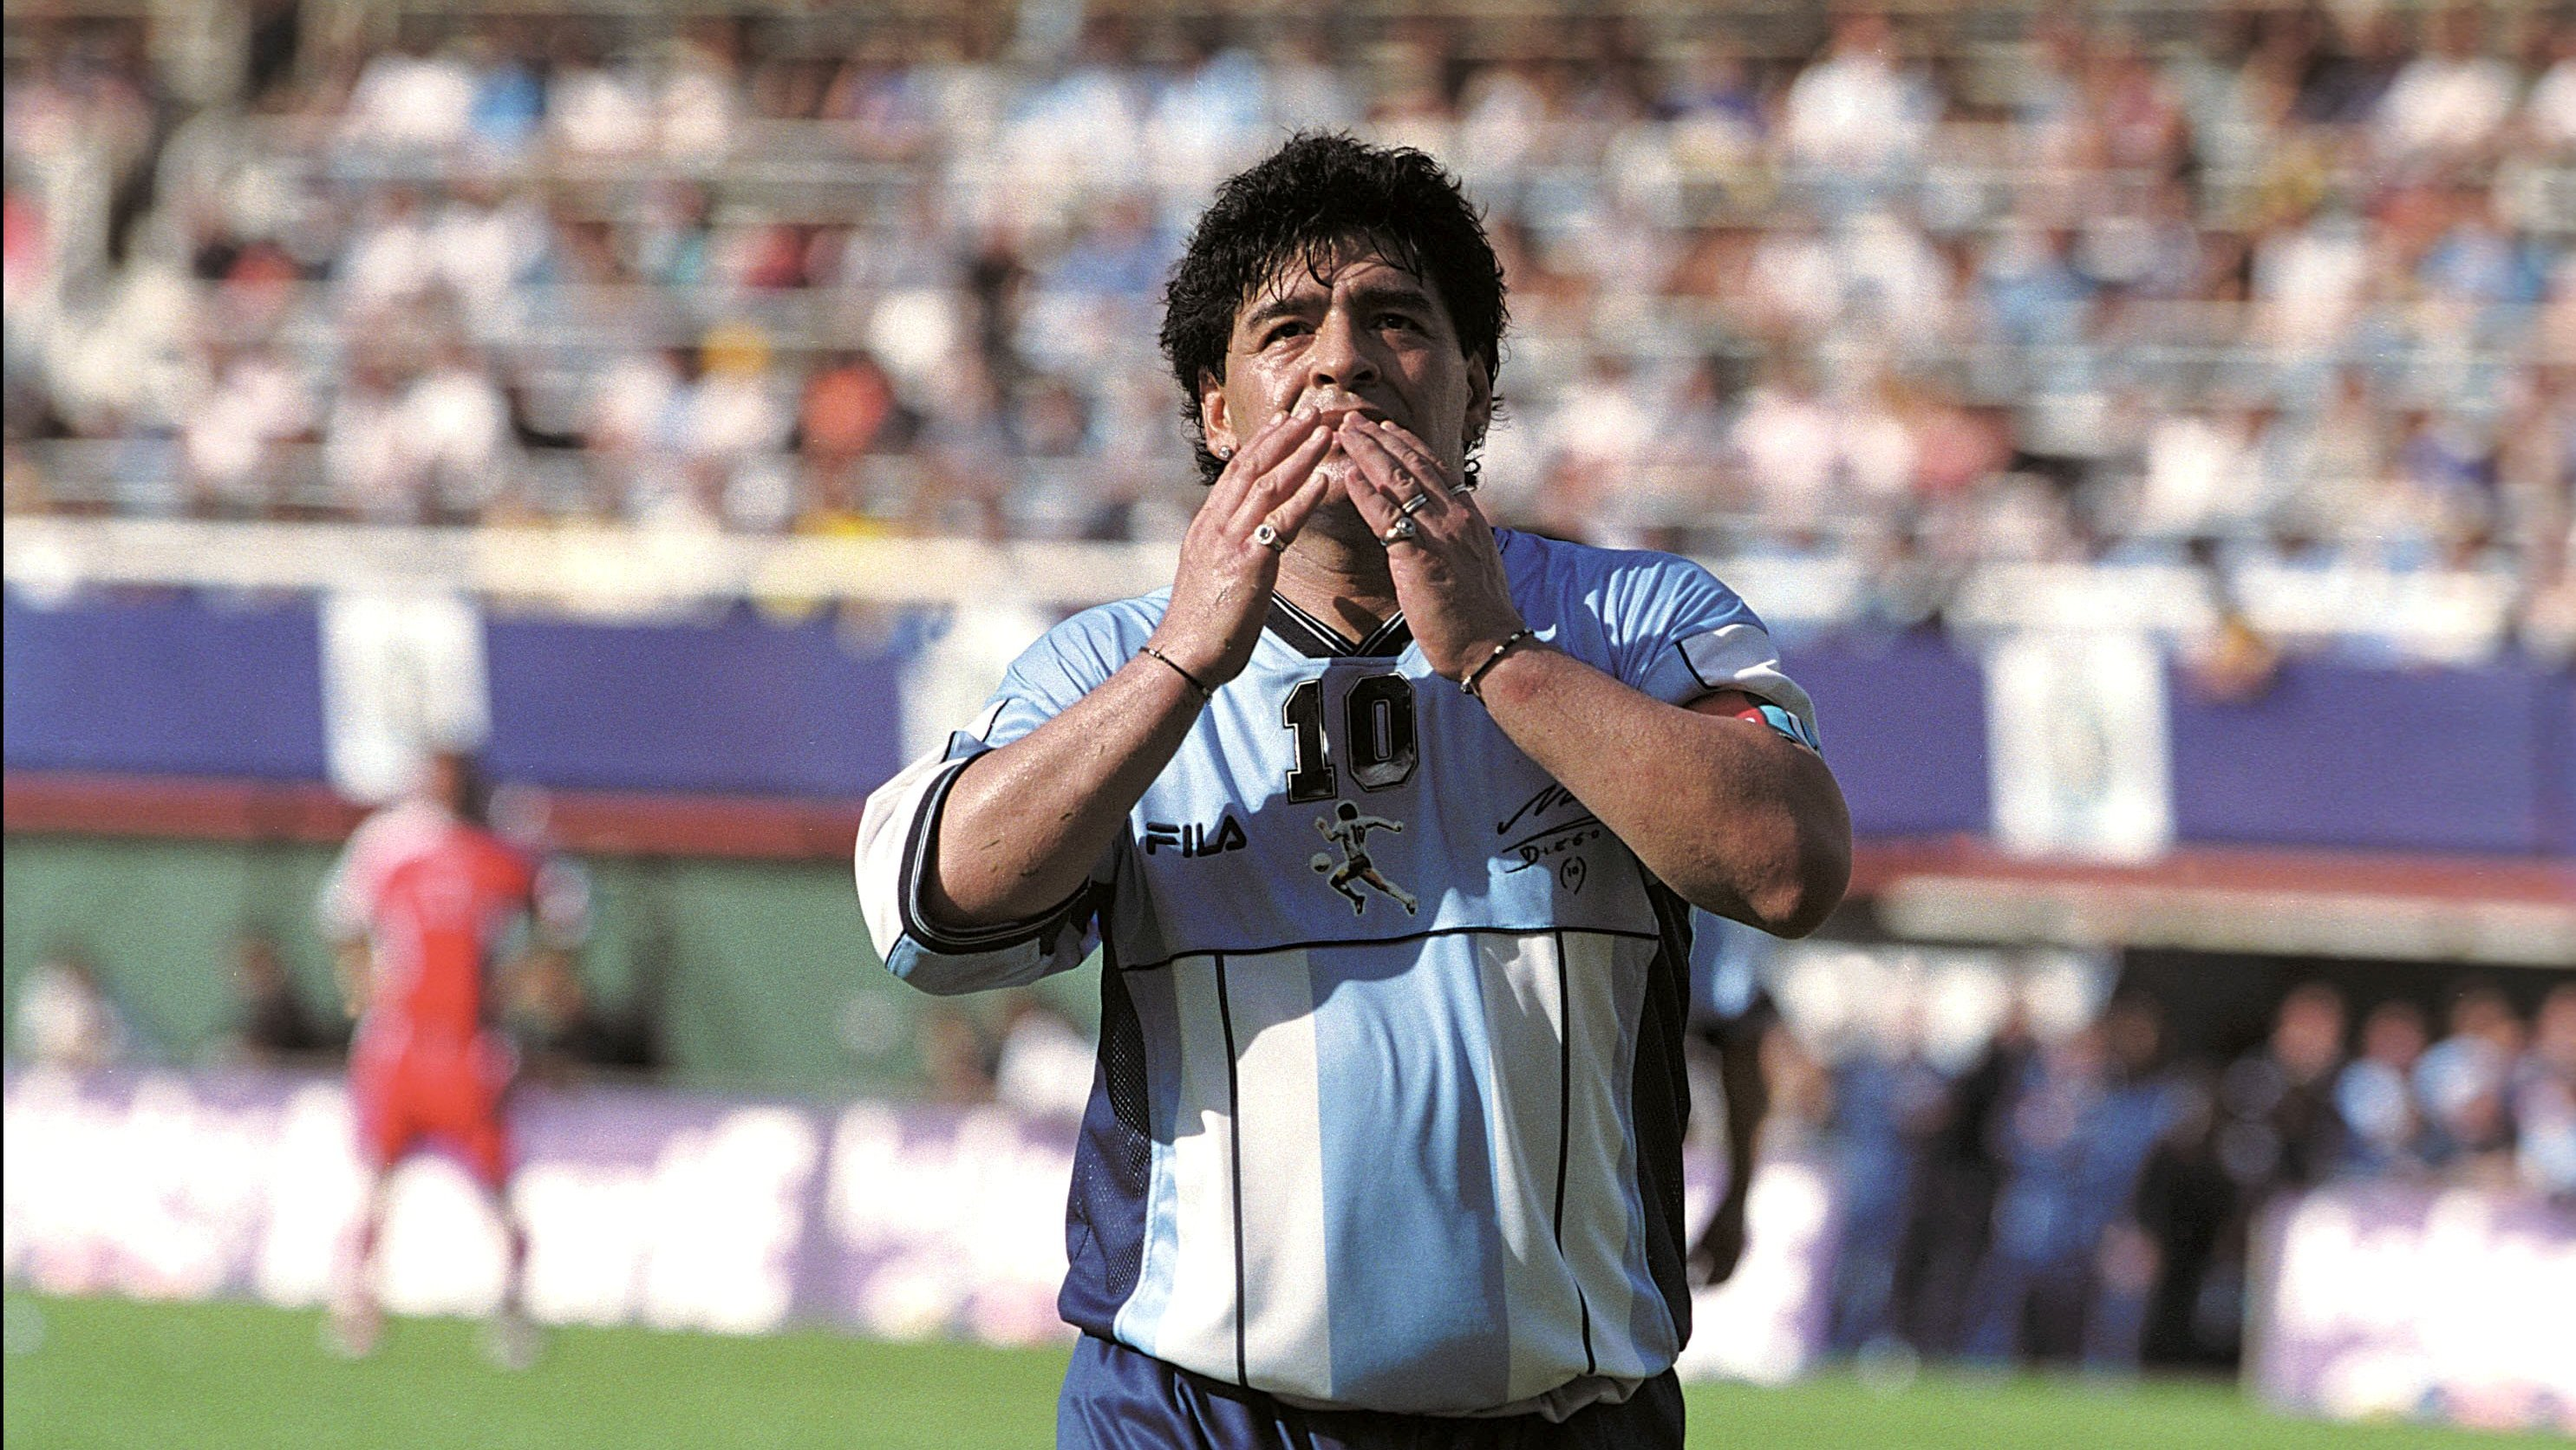 Diego Maradona says good bye to soccer in Buenos Aires, Argentina on November 01, 2001.